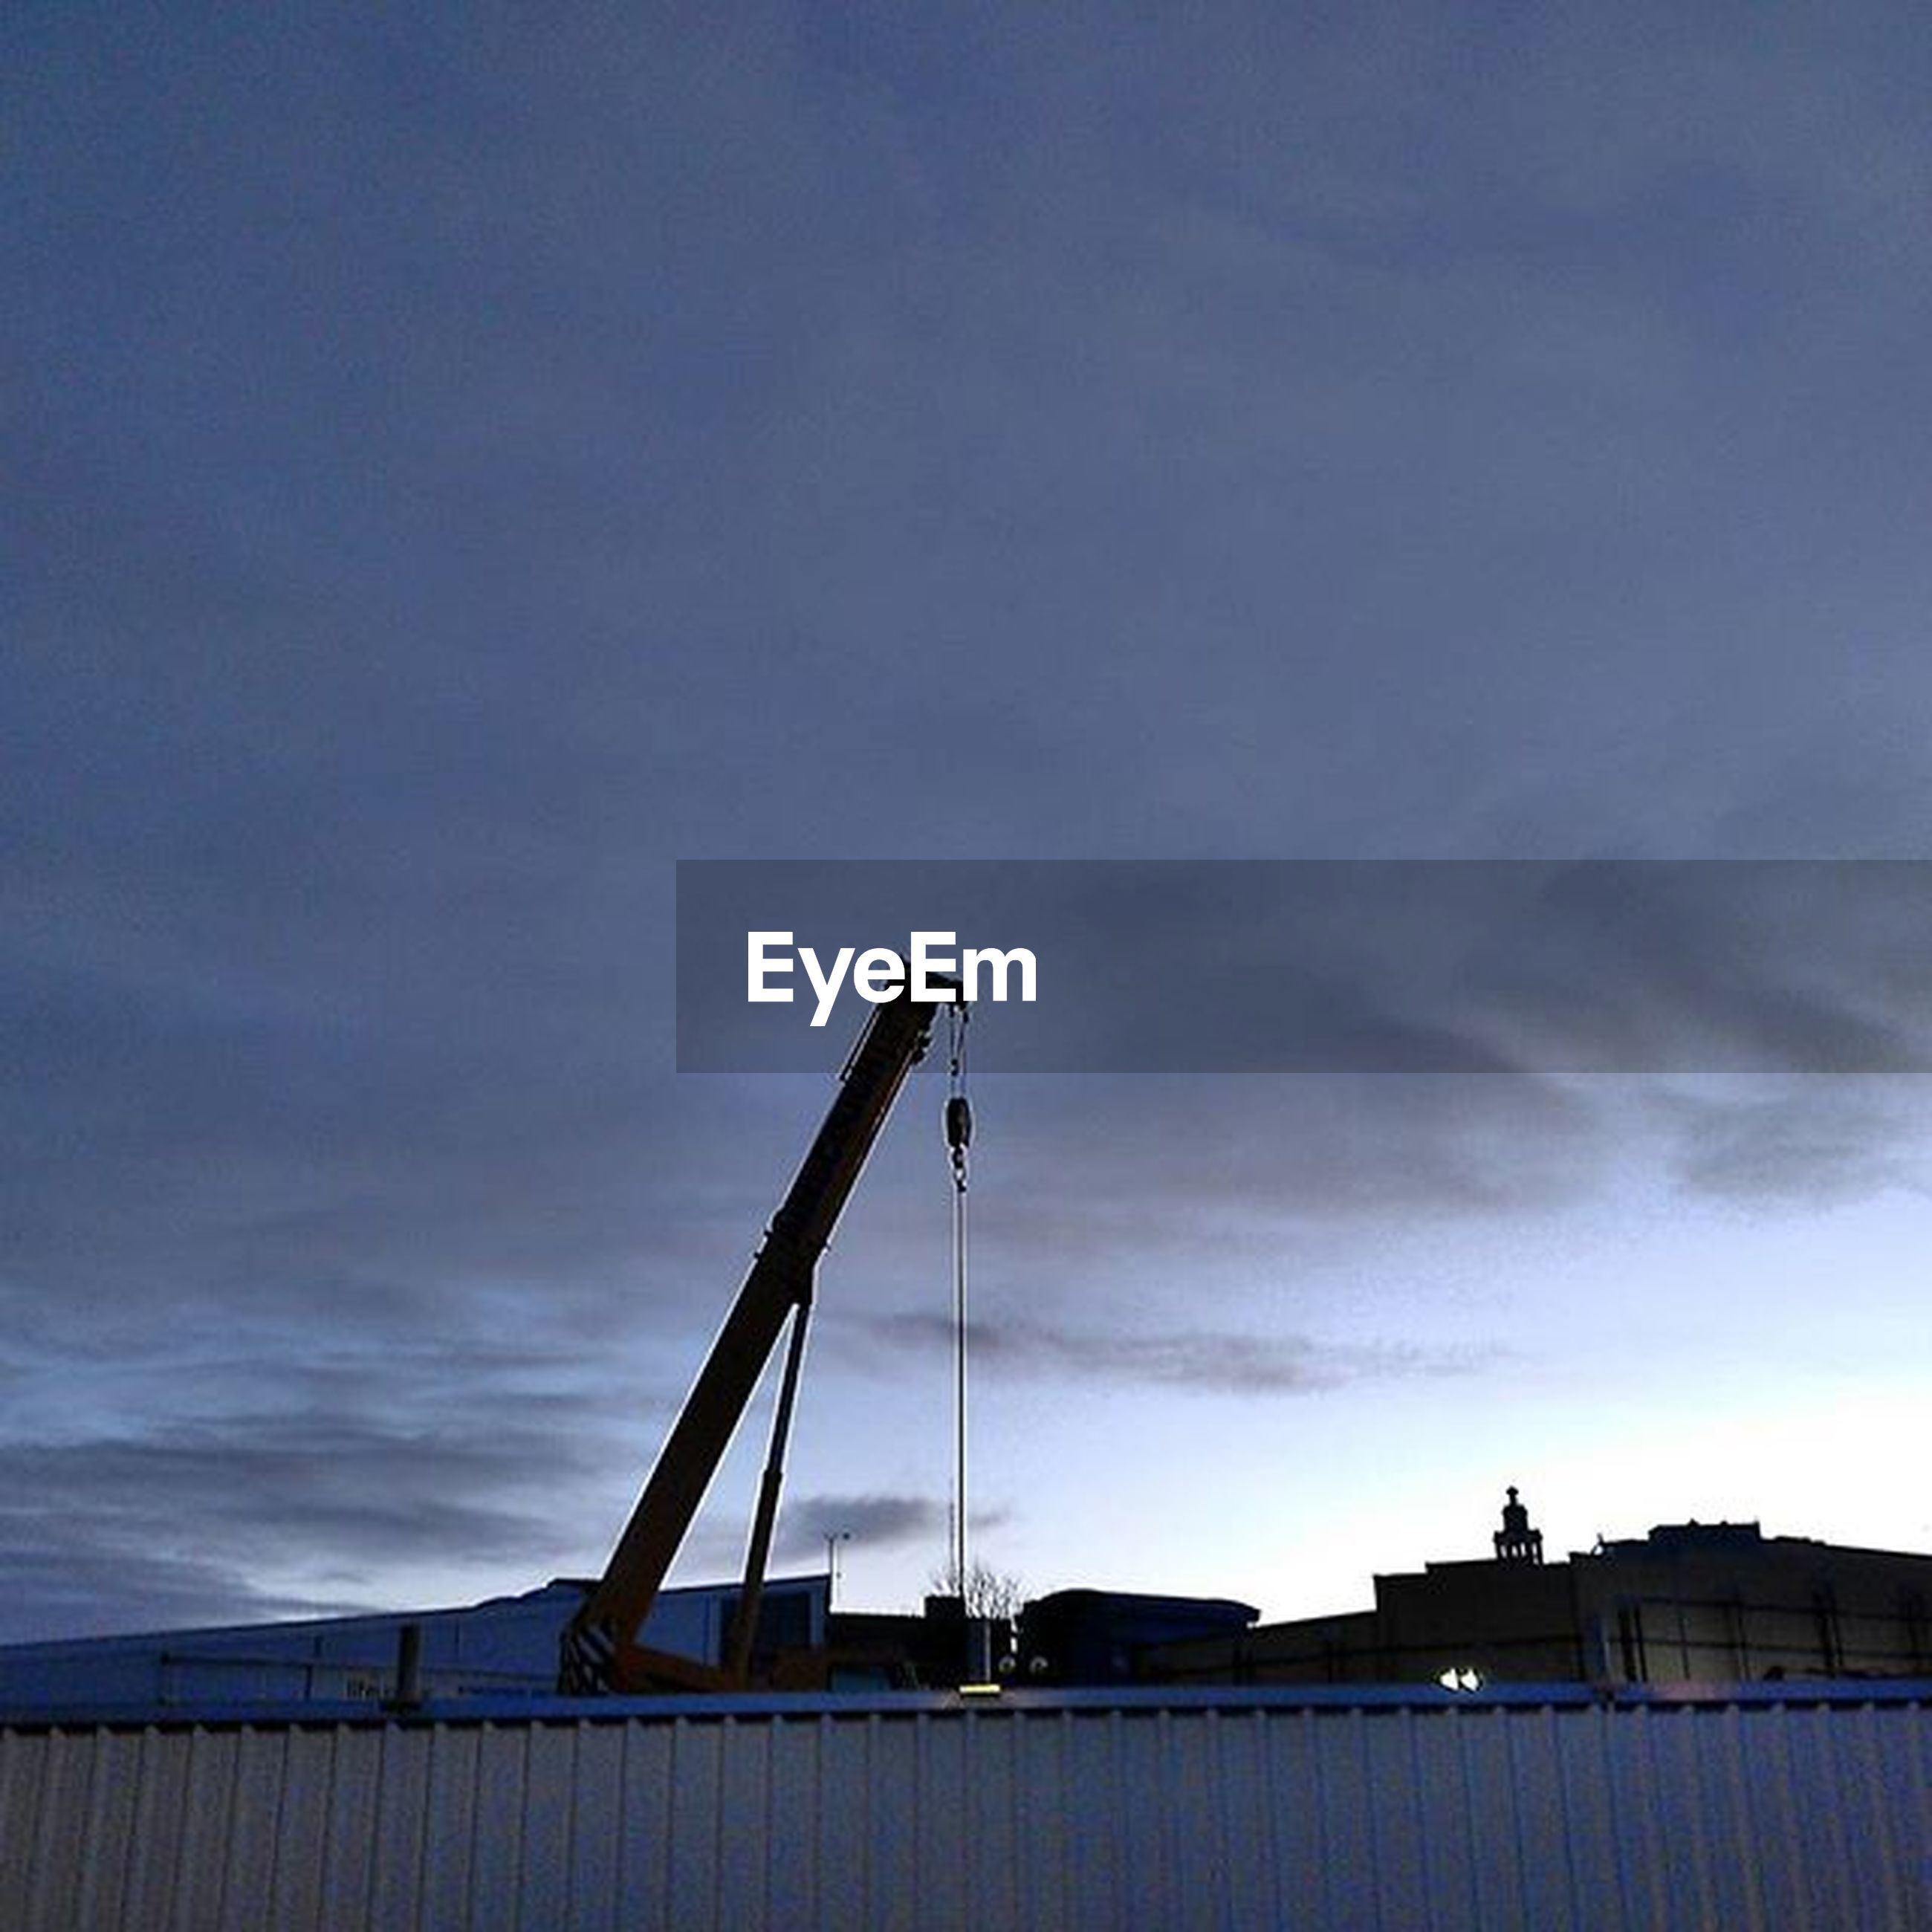 built structure, architecture, sky, building exterior, low angle view, industry, construction site, cloud - sky, crane - construction machinery, construction, development, crane, cloud, cloudy, factory, outdoors, smoke stack, no people, construction industry, incomplete